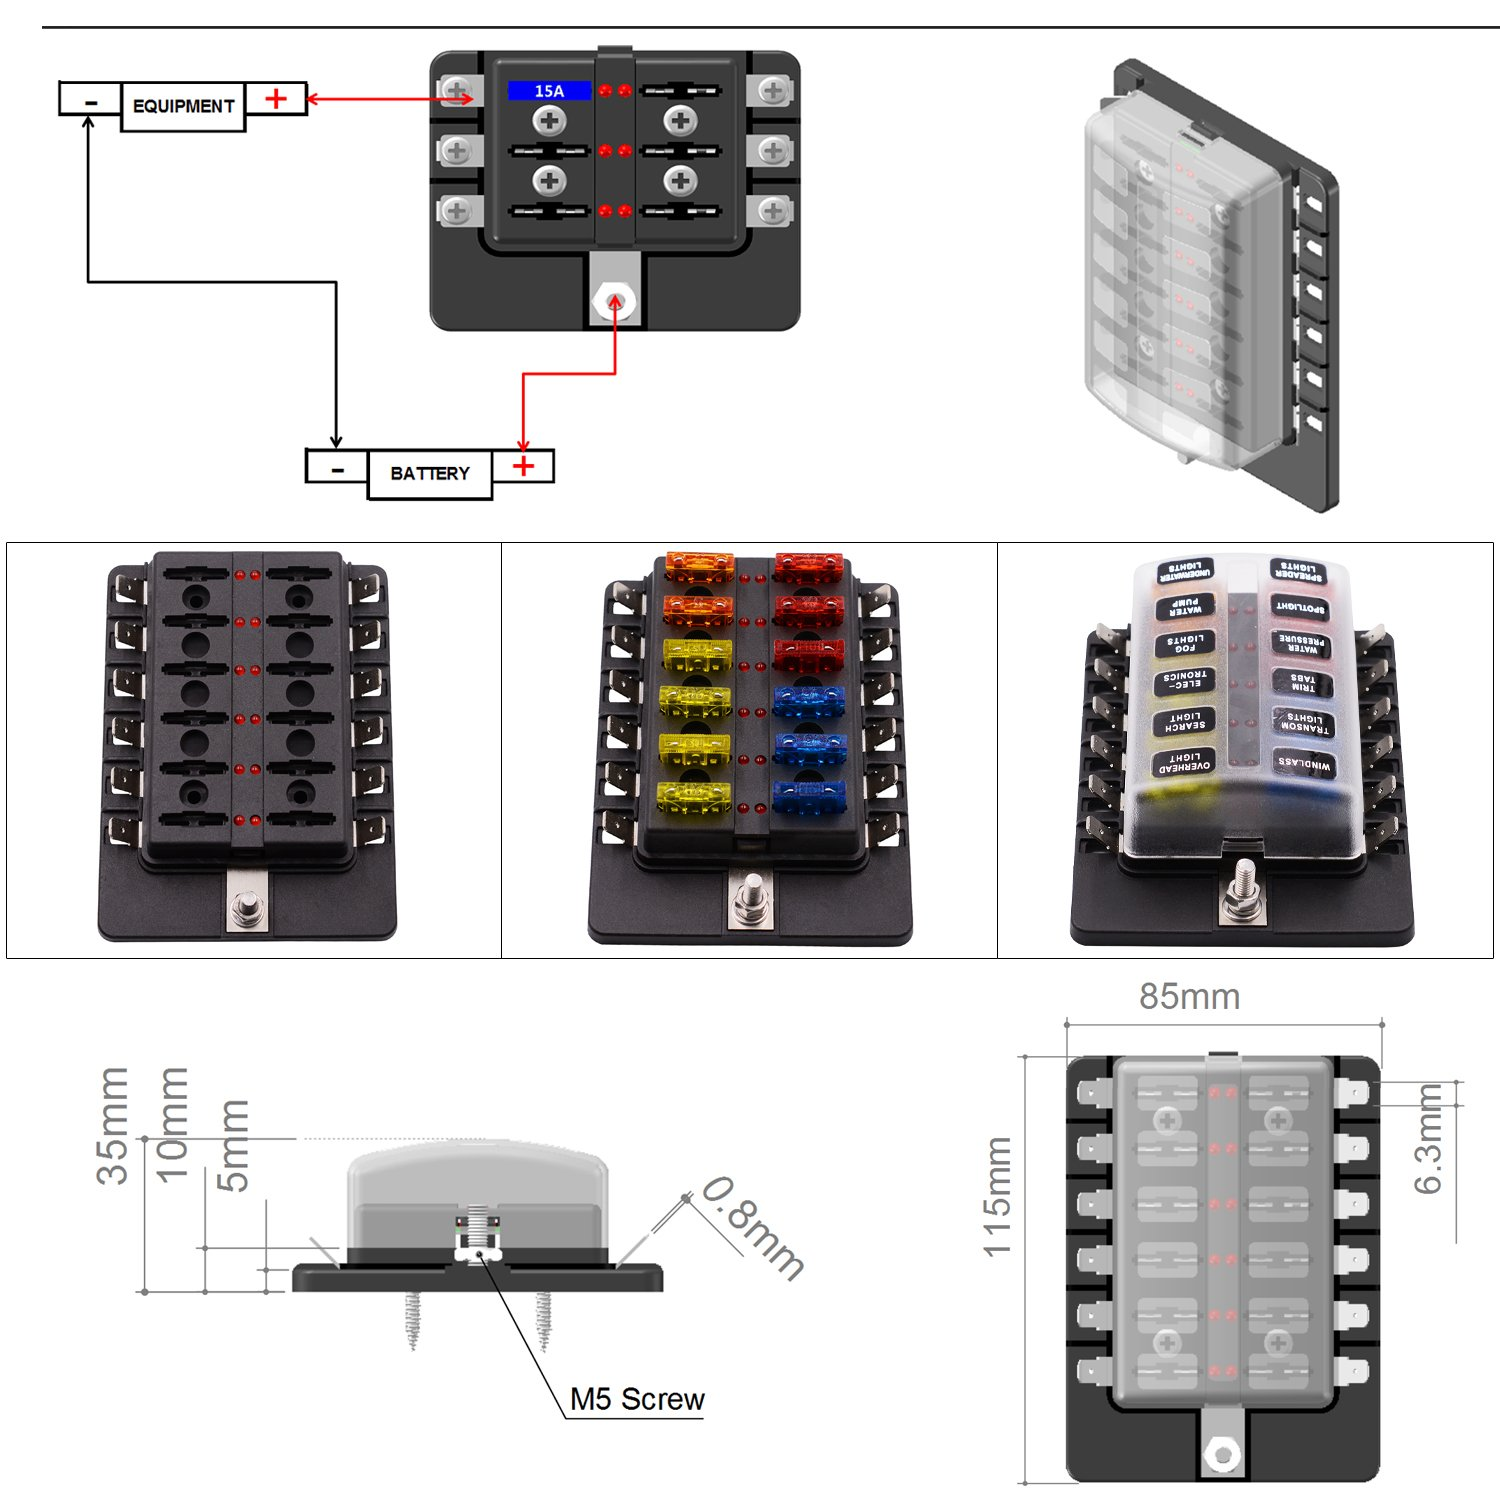 BlueFire Upgraded 12 Way Blade Fuse Box Fuse Box Holder Standard Circuit Fuse Holder Box Block with LED Light Indication /& Protection Cover for Car Boat Marine Trike Car Truck Vehicle SUV Yacht RV